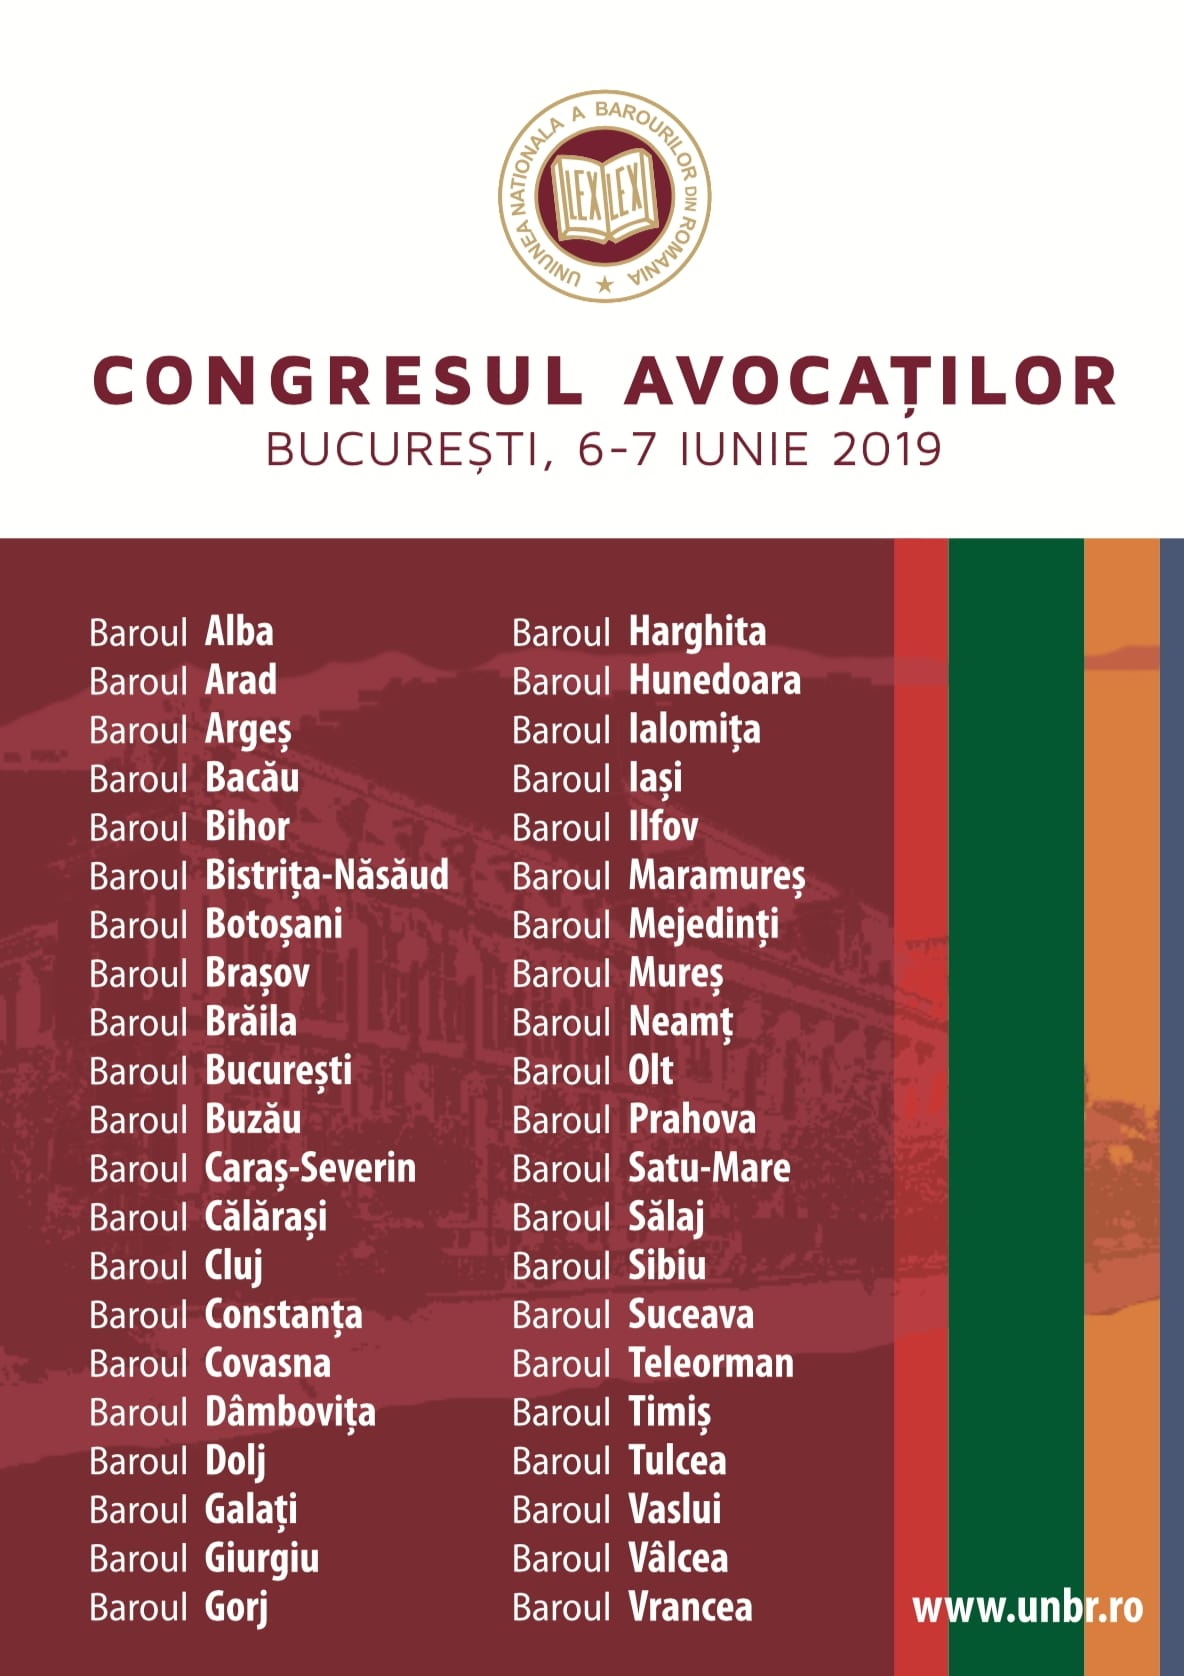 congresul-avocatilor-2019